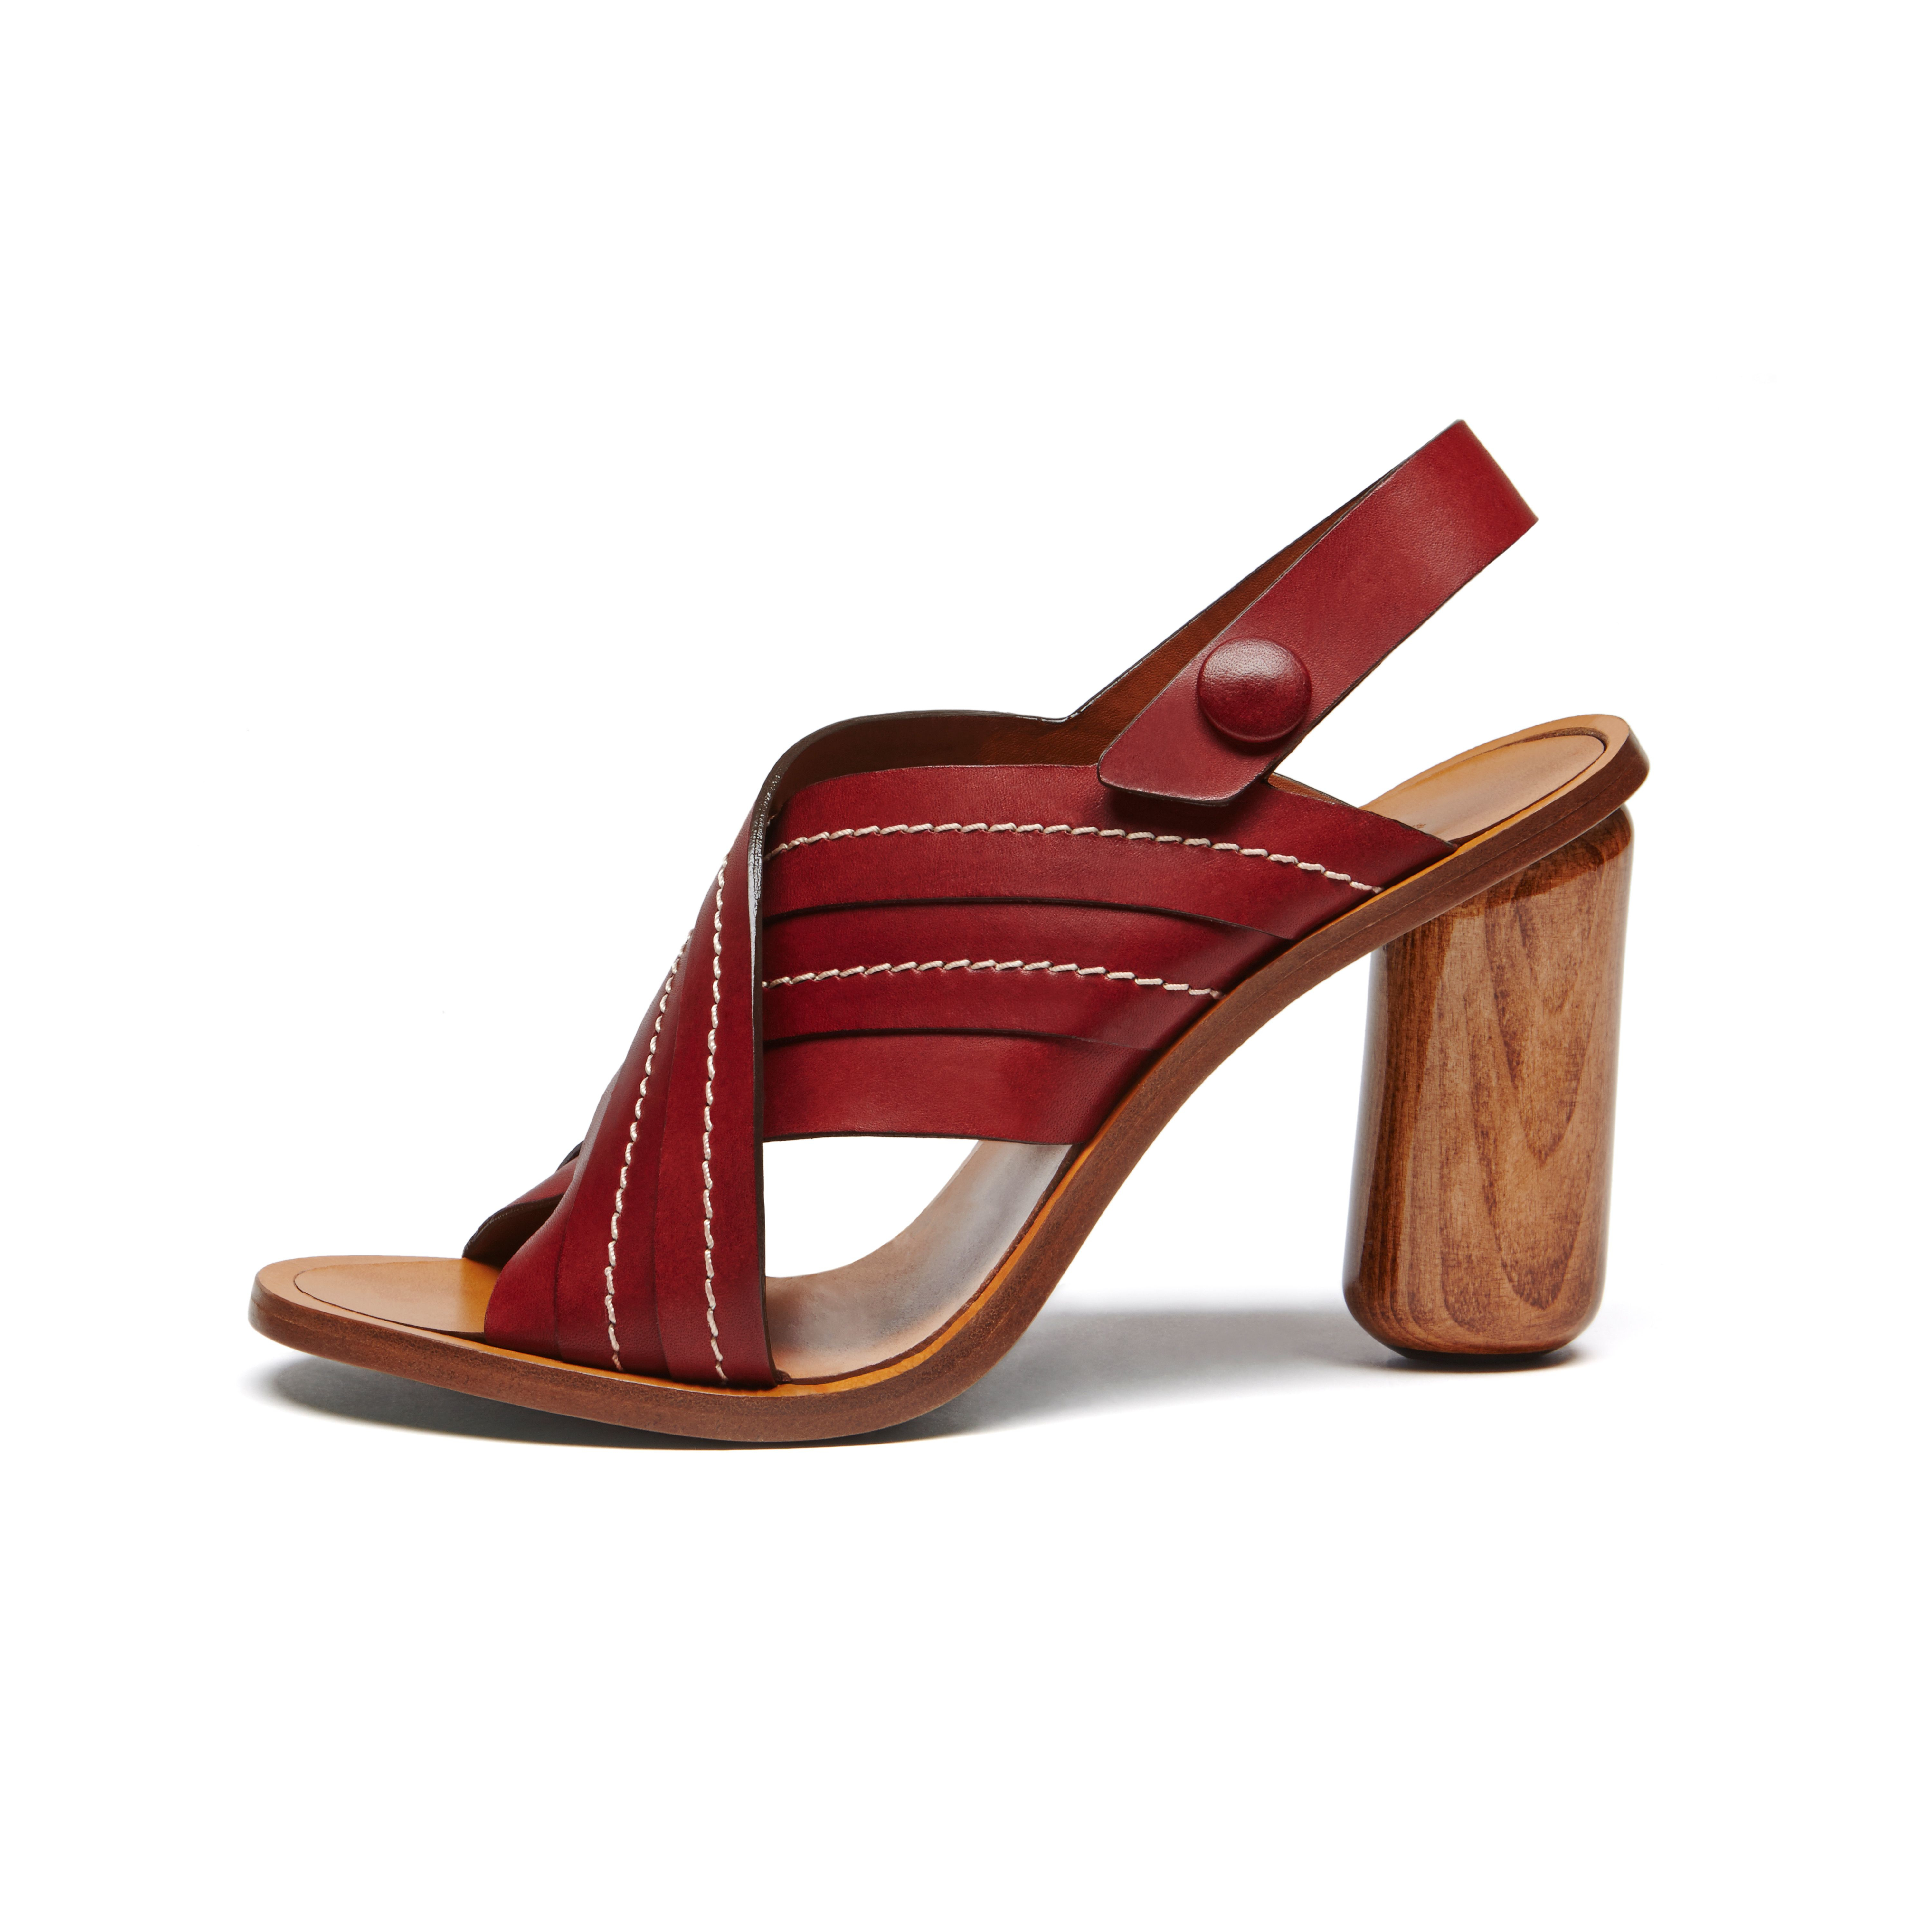 Soften Leather Shoes Heel